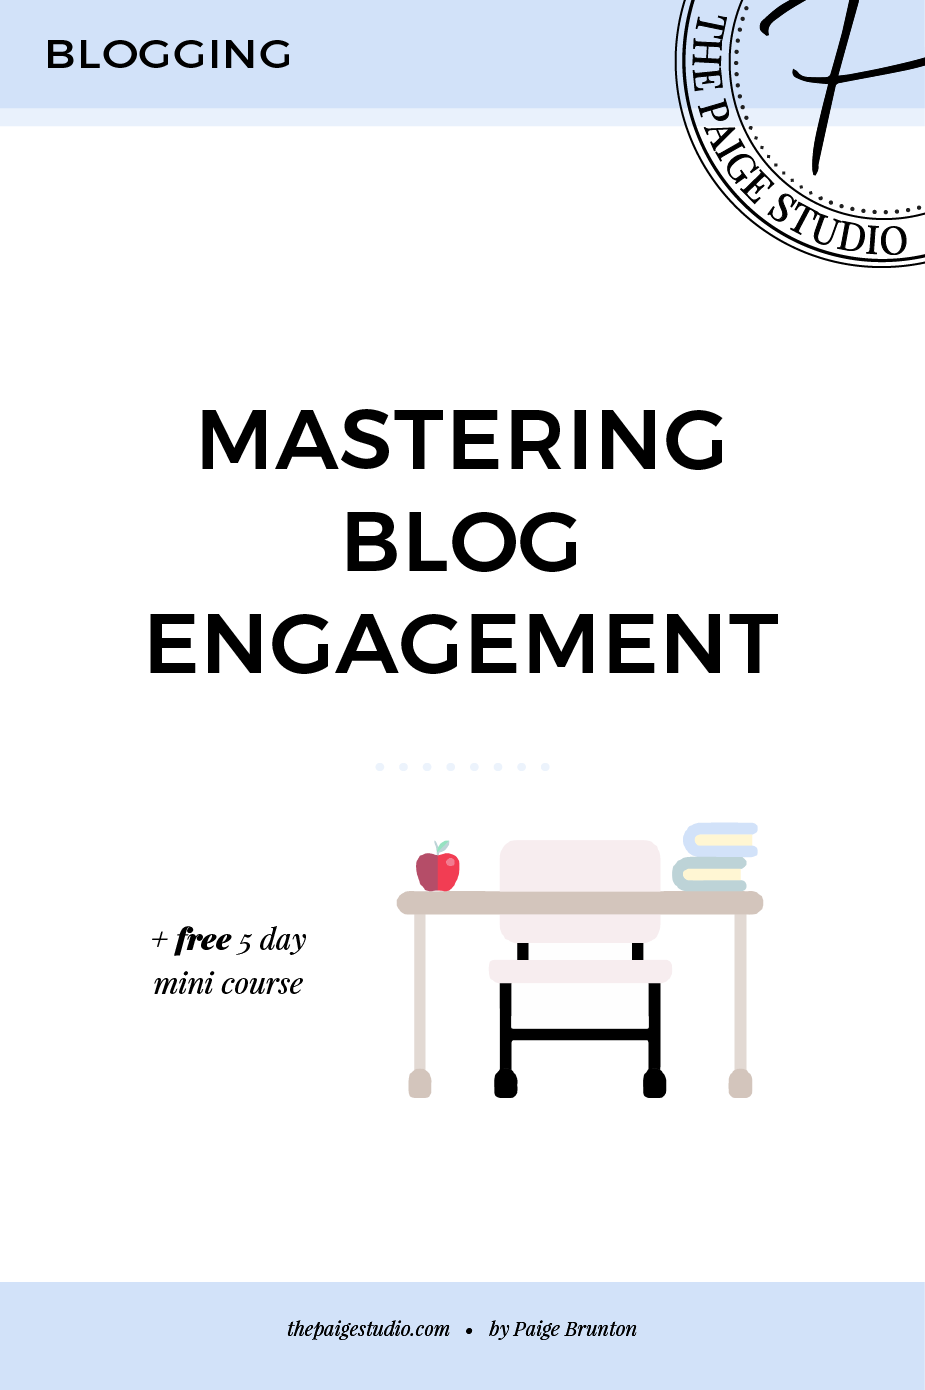 Are you a blogger looking to increase your blogs engagement? This post includes explains what to do to get your followers to interact with your blog + social media posts. PLUS join the FREE mini course, Mastering Blog Engagement to really learn all the ins and outs of getting blog engagement. Click through to read the whole post and join the free mini course!